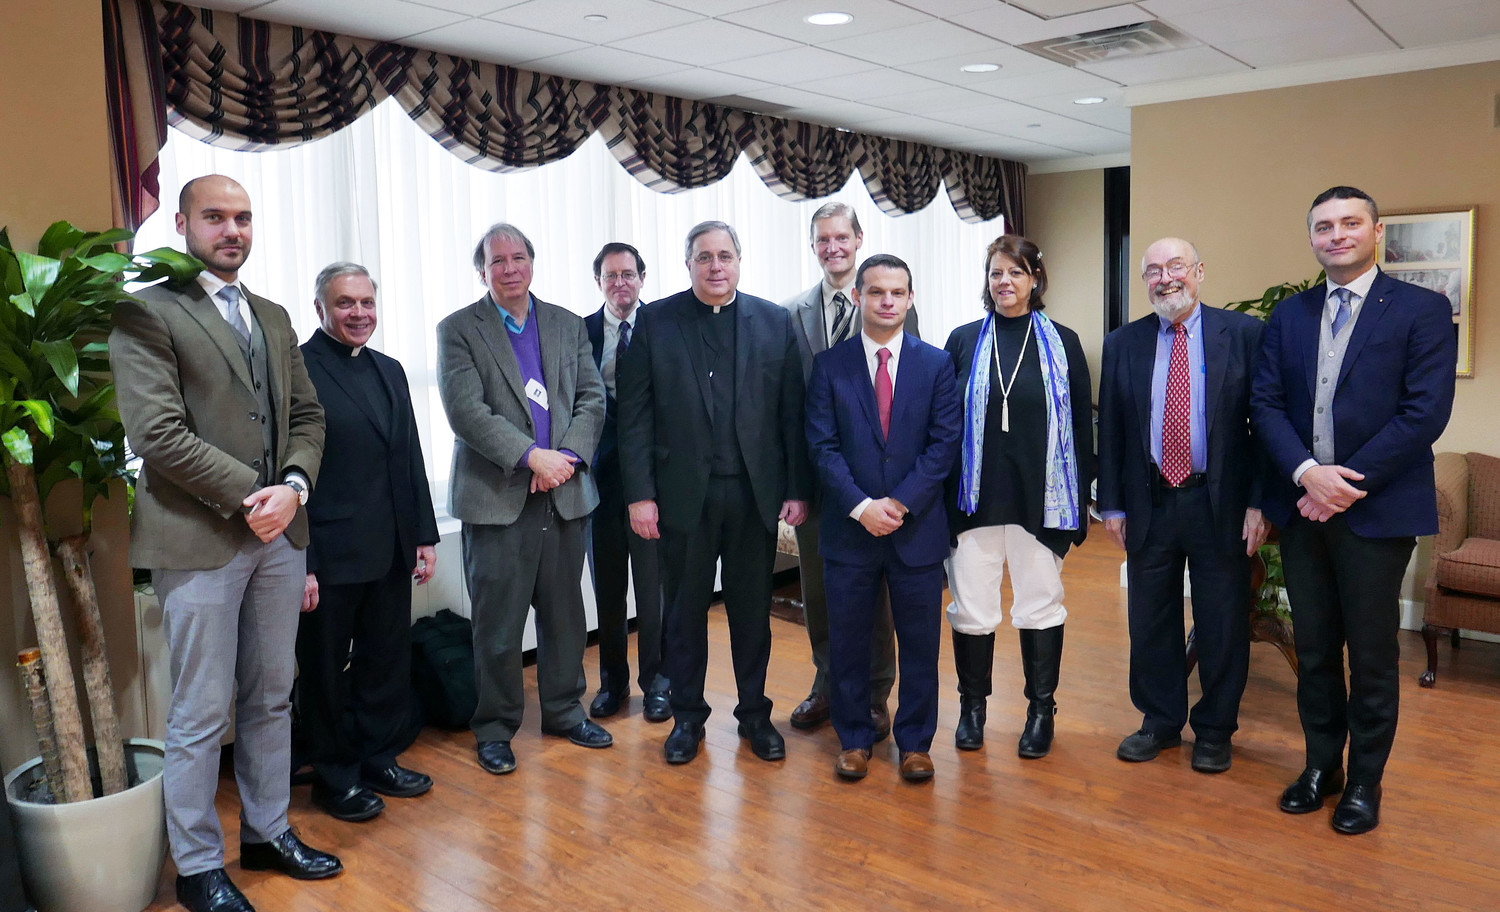 officials of the inquiry met with Dr. Hilgeman, right, and Dr. Spedicator, left. They include Msgr. Stephen DiGiovanni, Diocese of Bridgeport, chairman of the historical commission; historical commission members Robert Ellsberg and Patrick Jordan; Father Richard Welch, C.Ss.R., judicial vicar of the Metropolitan Tribunal and the Cardinal's delegate for the cause; Jeff Korgen, staff member for the Dorothy Day Guild; Dr. Daniel Frascella, historical commission member; Marie Martin, notary for the inquiry; and George Horton, vice postulator for the cause.